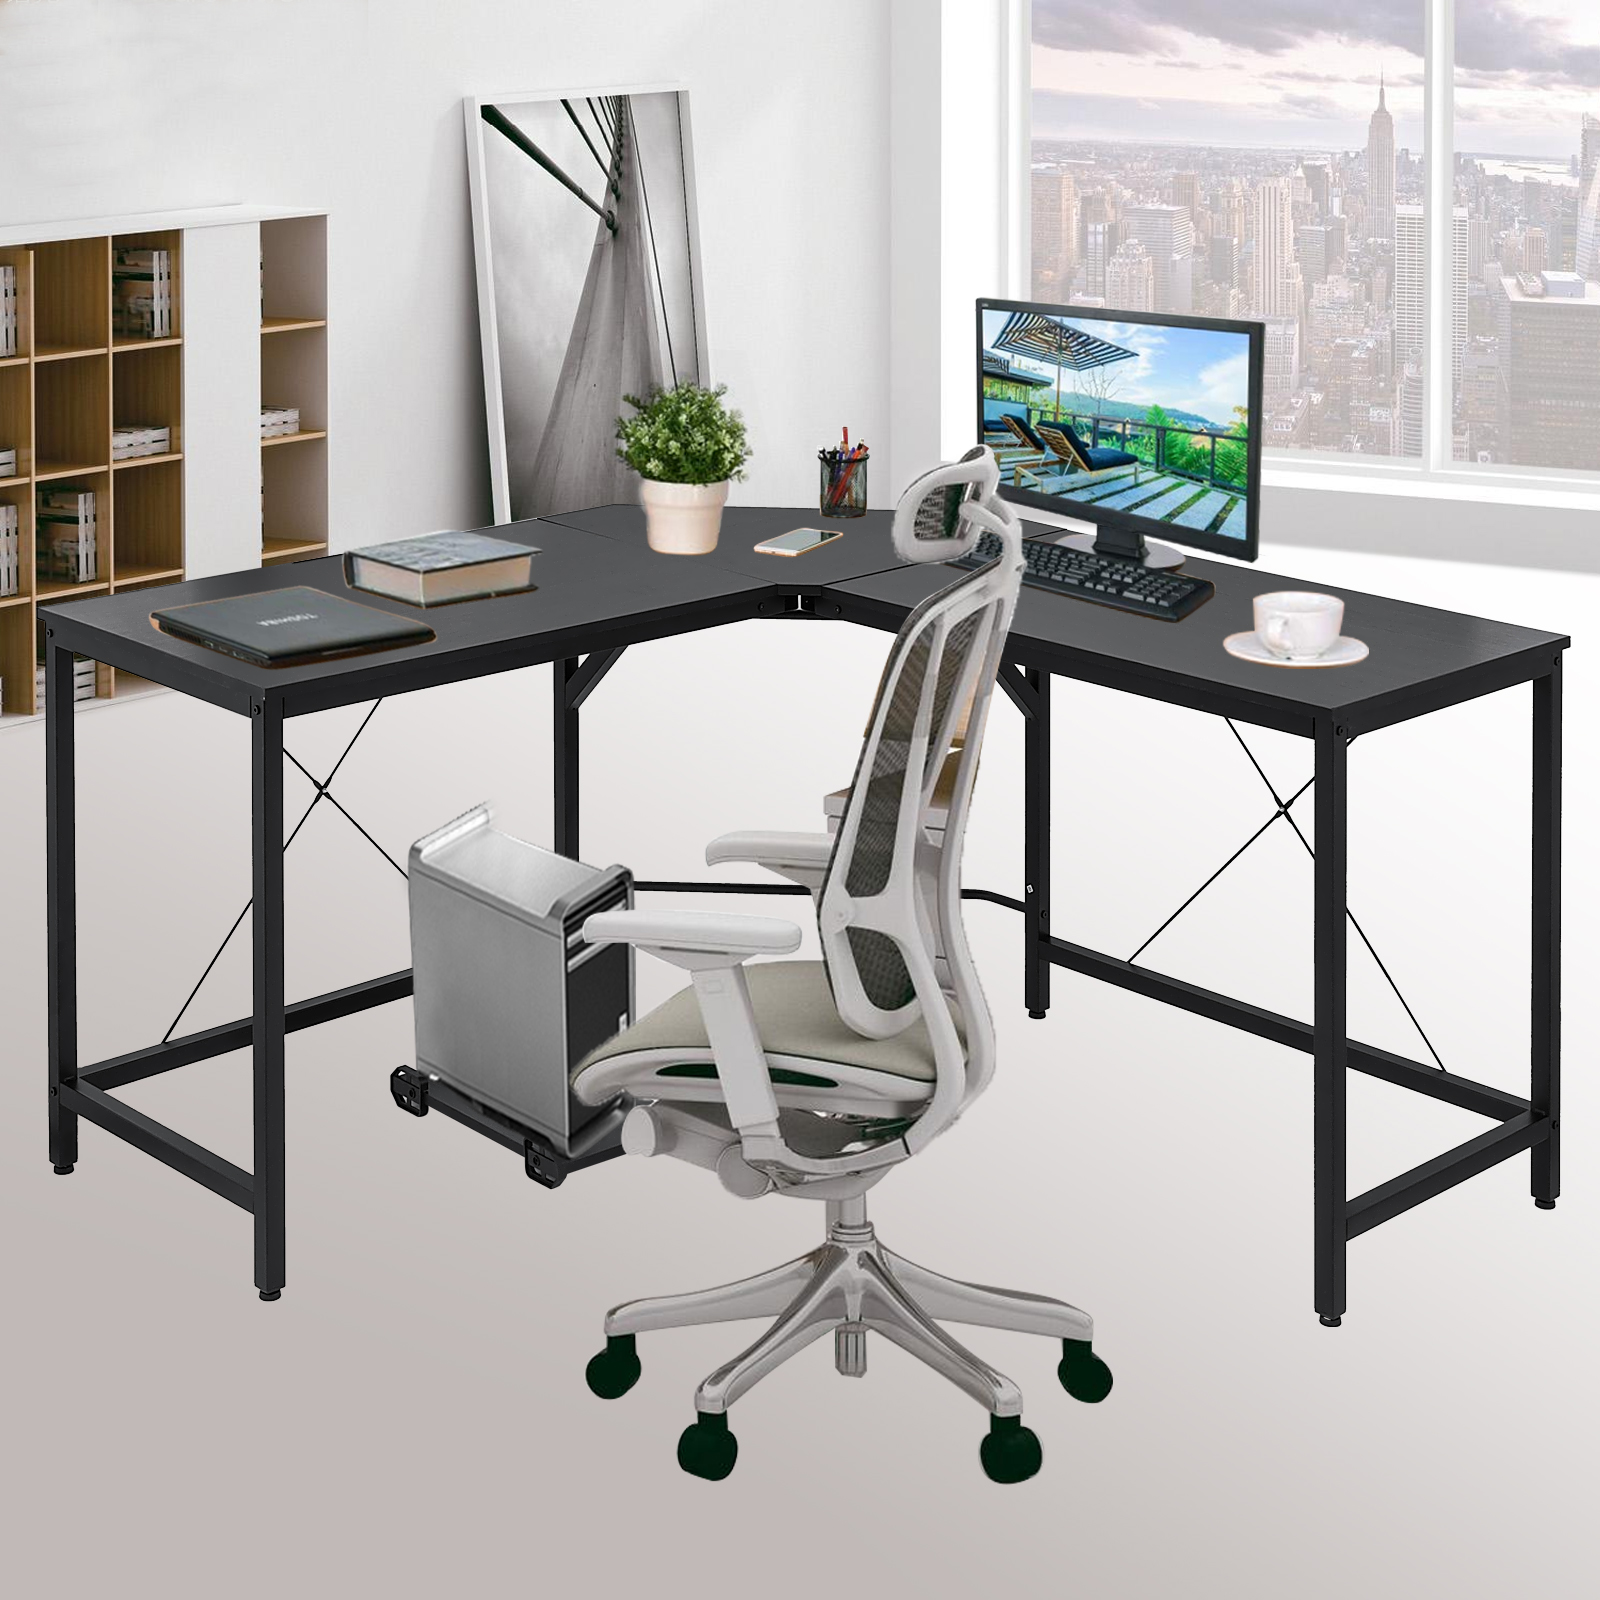 Details About L Shaped Corner Computer Desk Home Office Footrest Limited  Room Easy Install